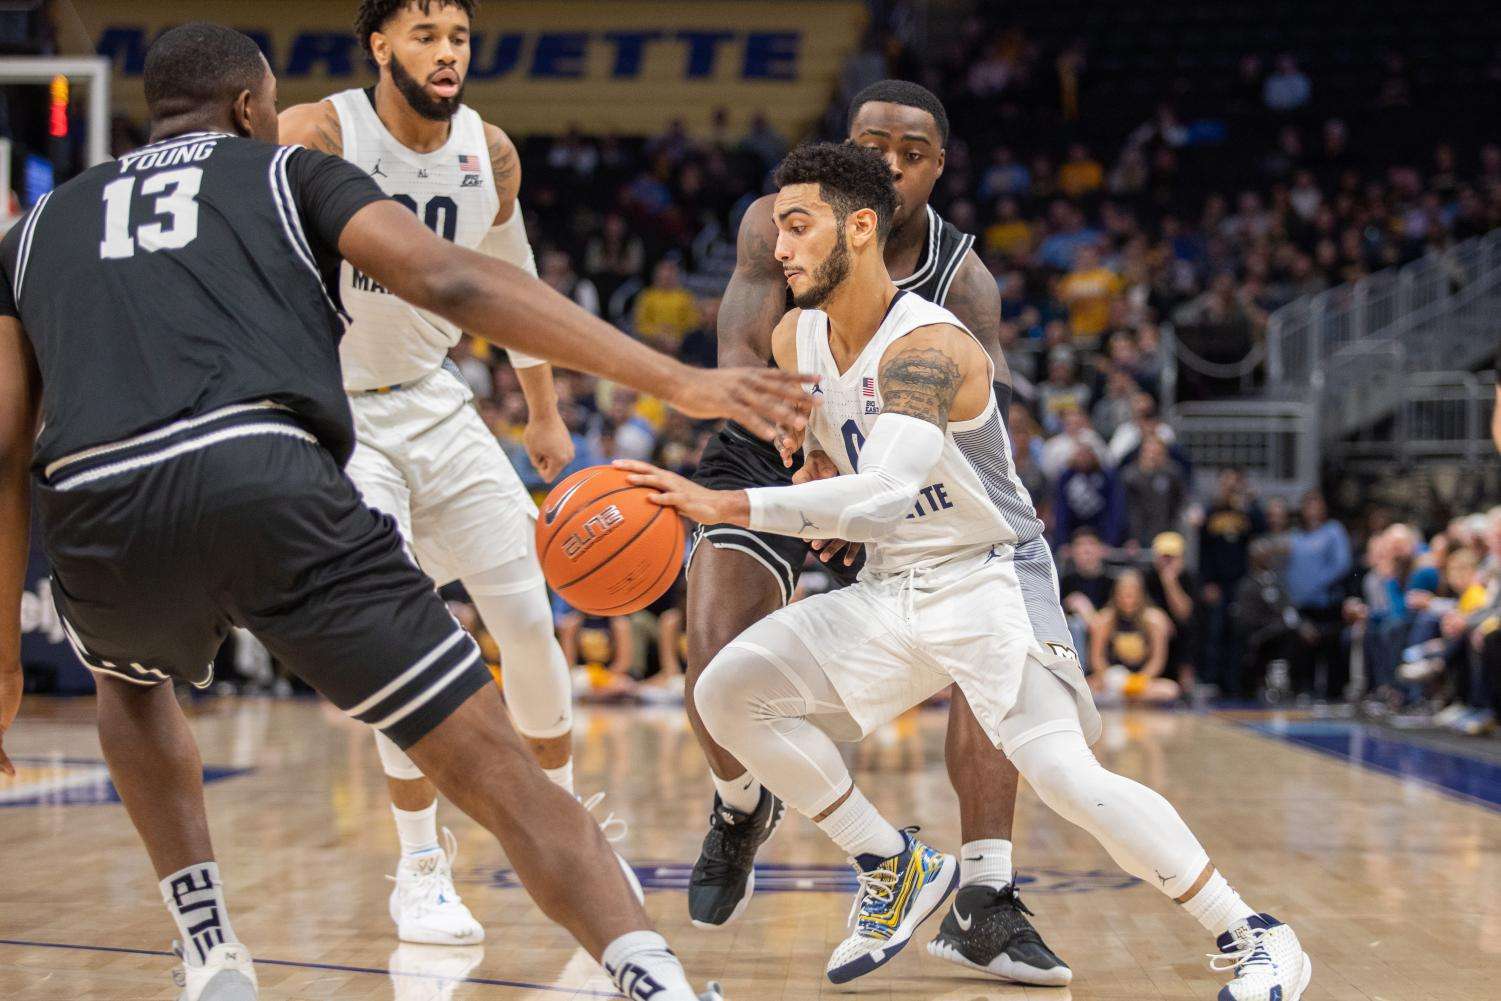 Markus Howard (0) dribbles the ball in Marquette's 81-80 overtime loss to Providence. The senior guard scored 39 points.